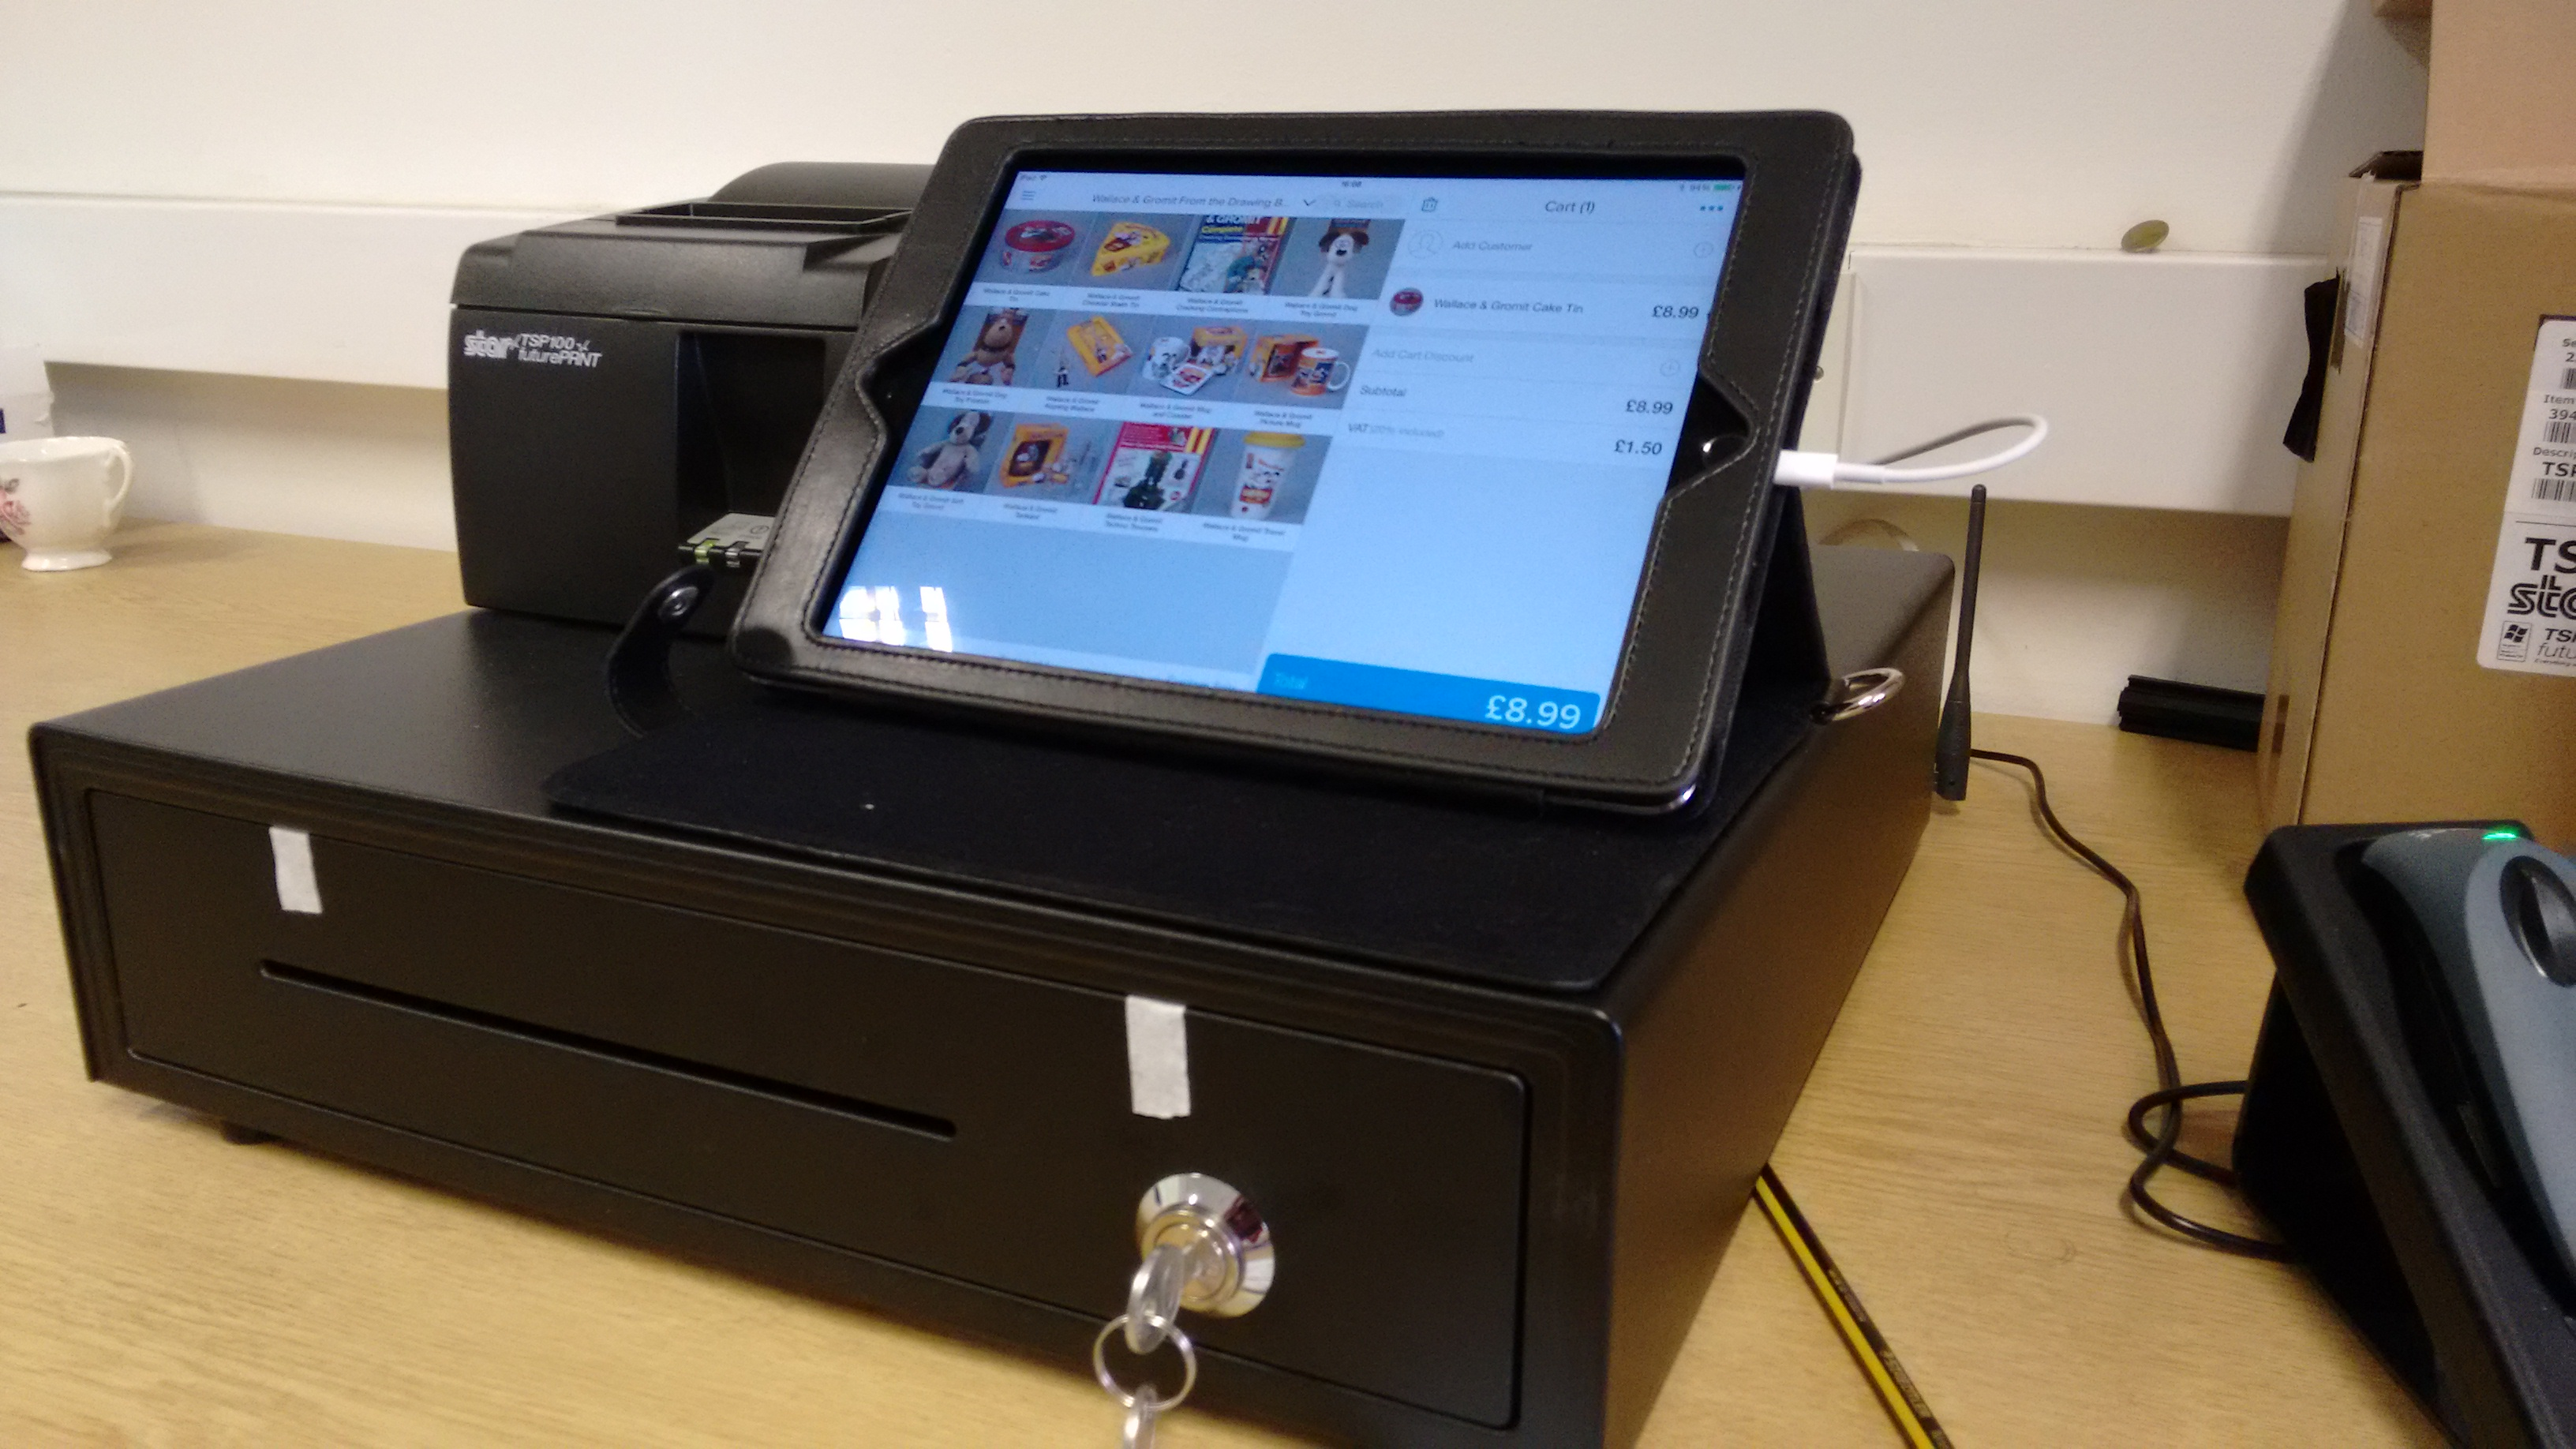 Photo of Shopify till - iPad, till and printer first use